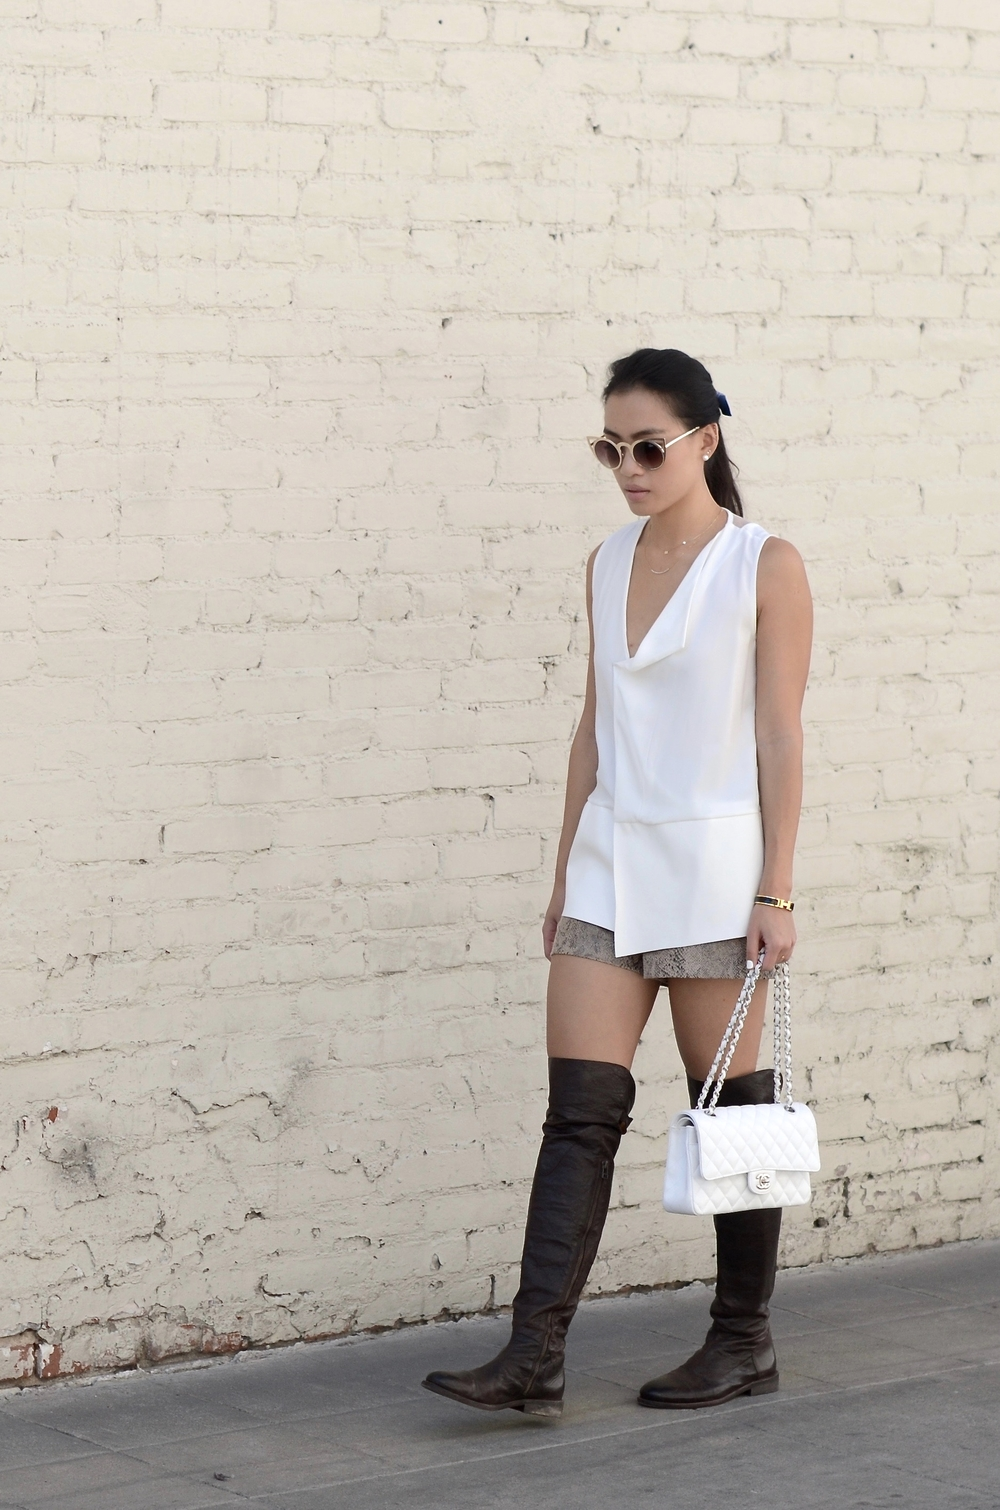 Just Goh With It-Outfit-over-the-knee-flat-boots-zara-all-saints-cat-eye-classic-chanel-7.jpg